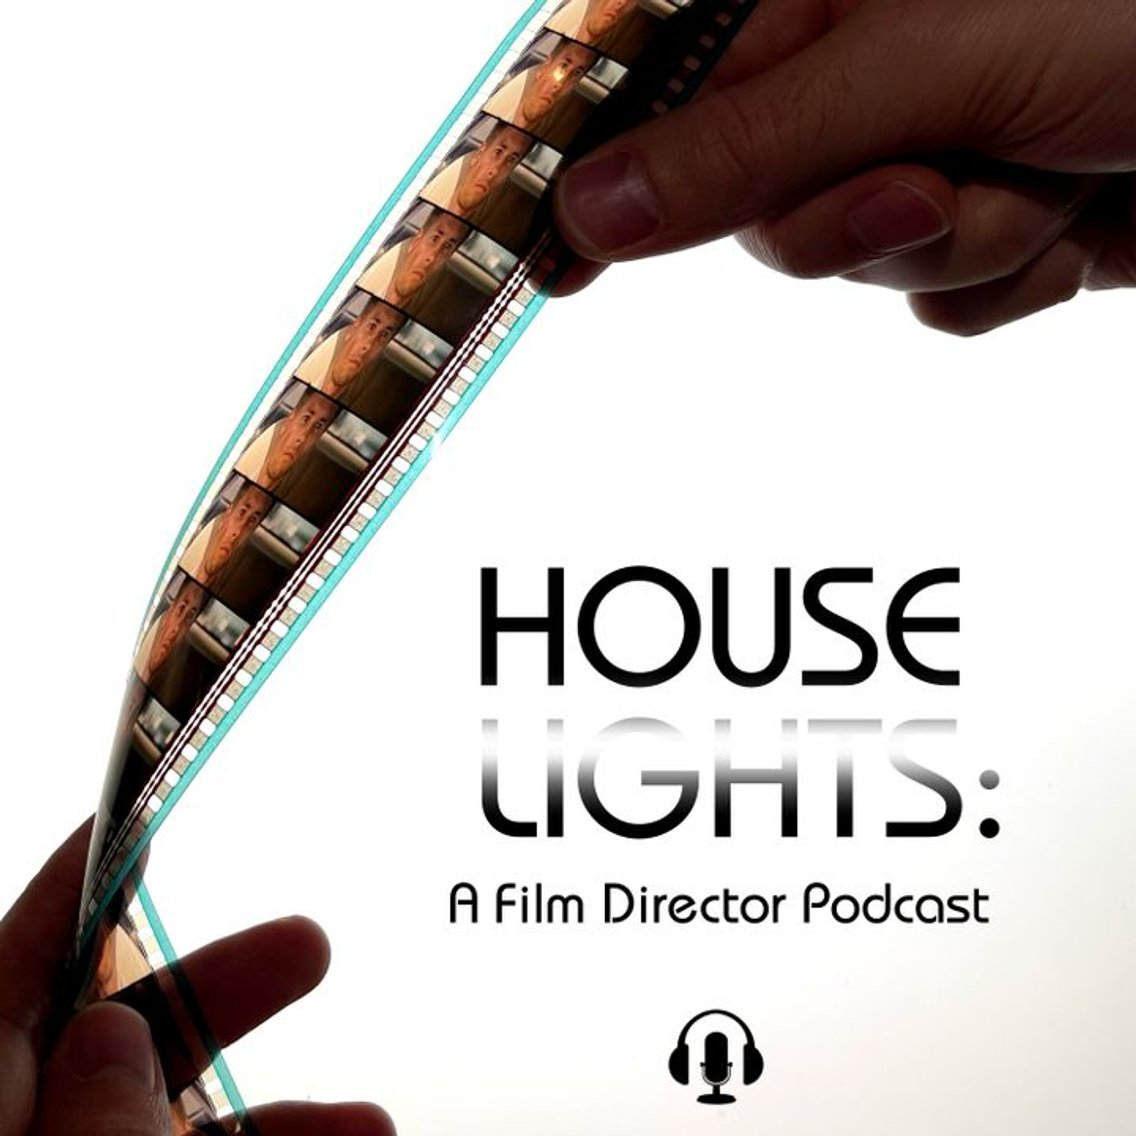 Houselights: A Film Director Podcast - Cover Image